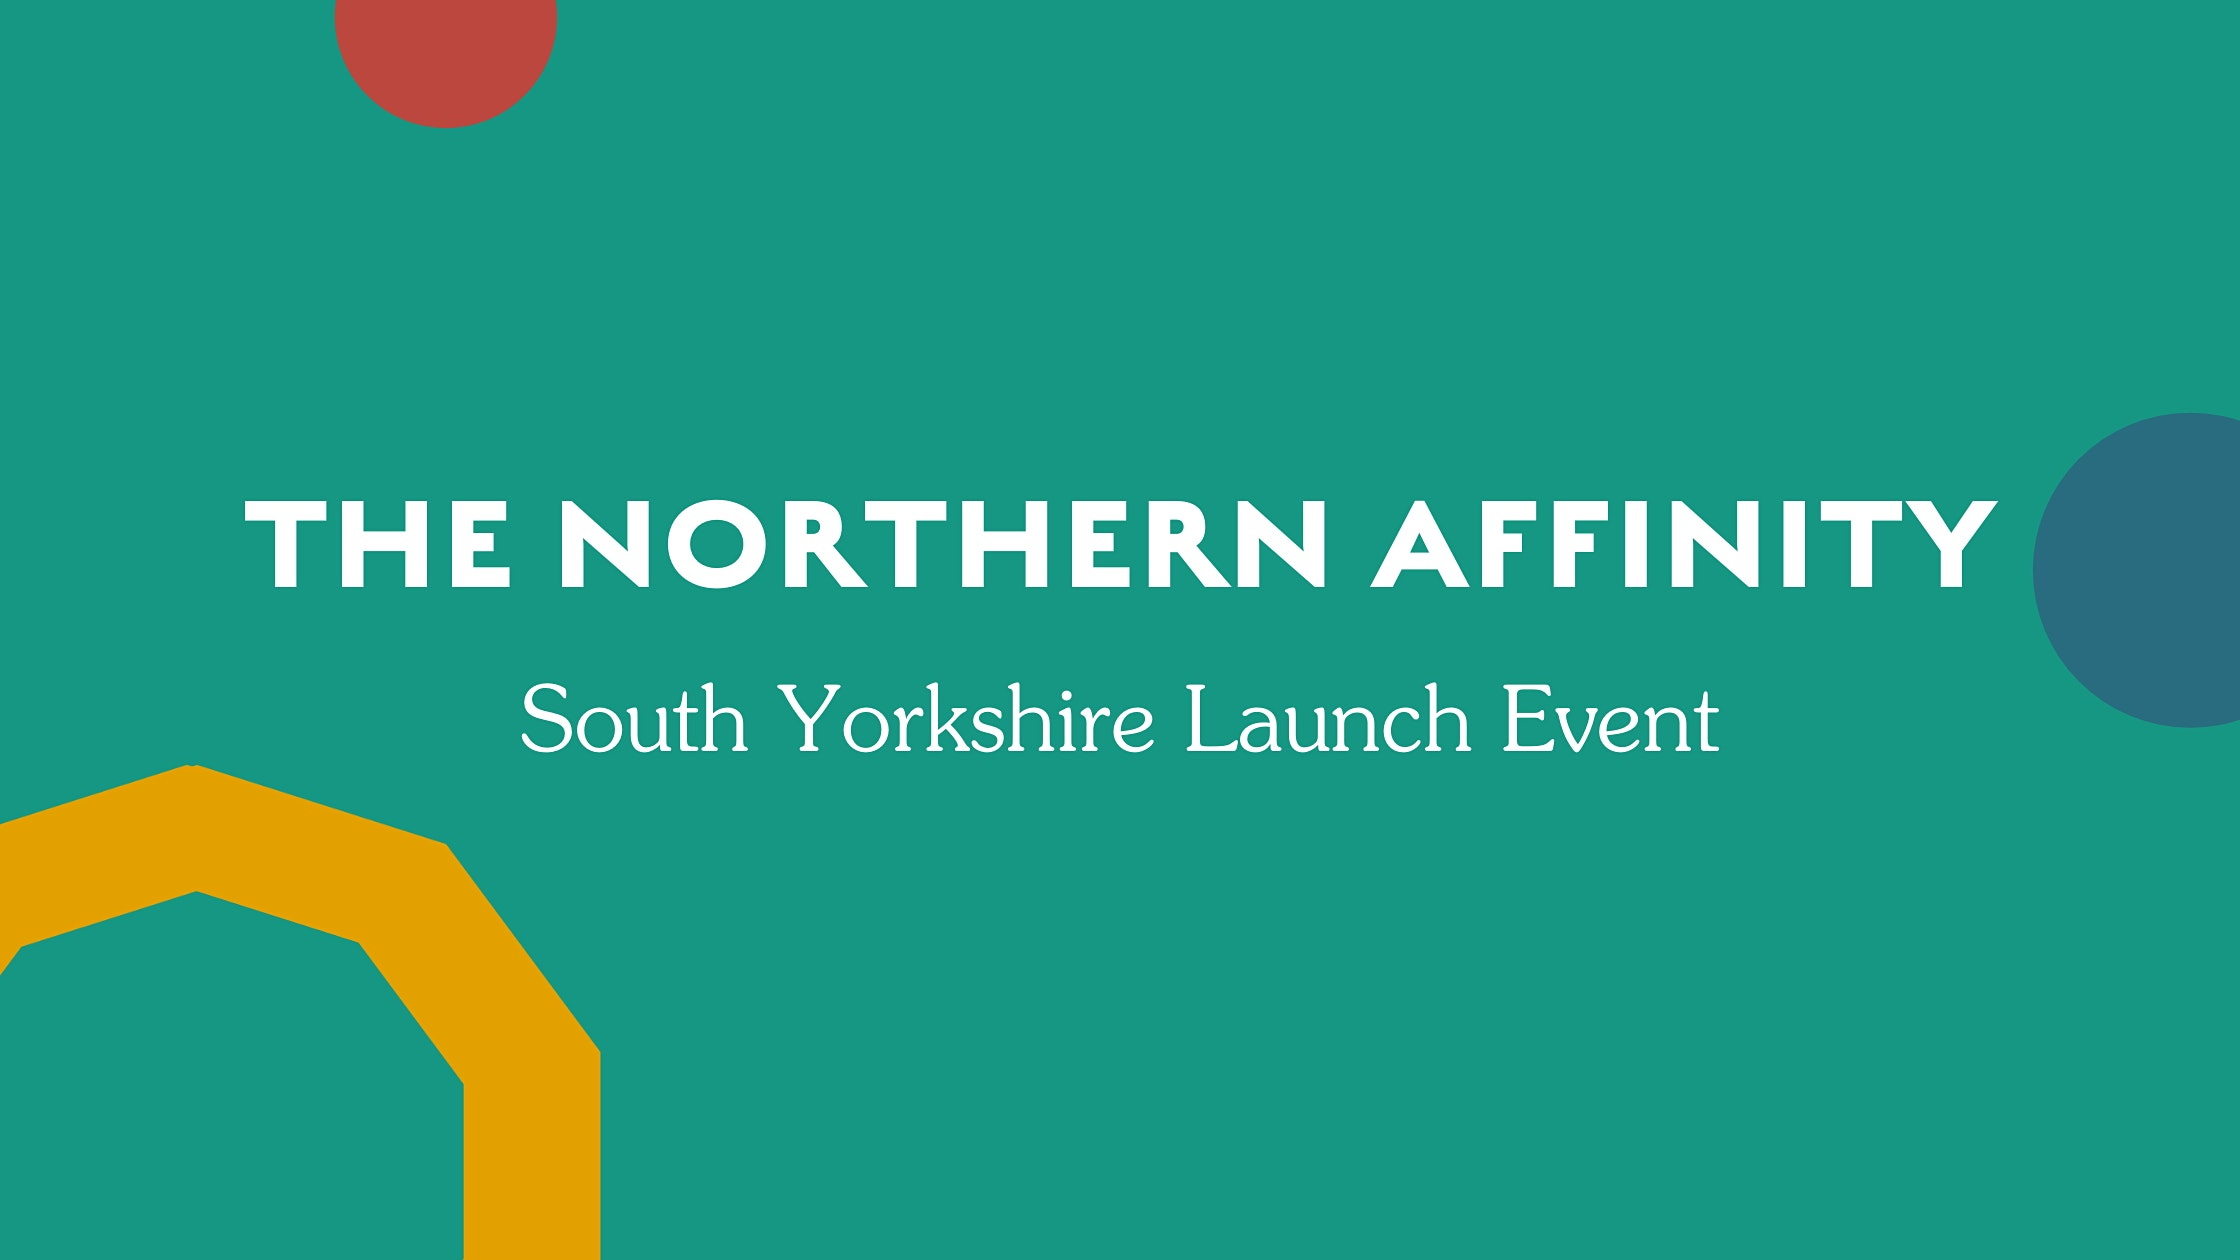 The Northern Affinity Launch Event – South Yorkshire